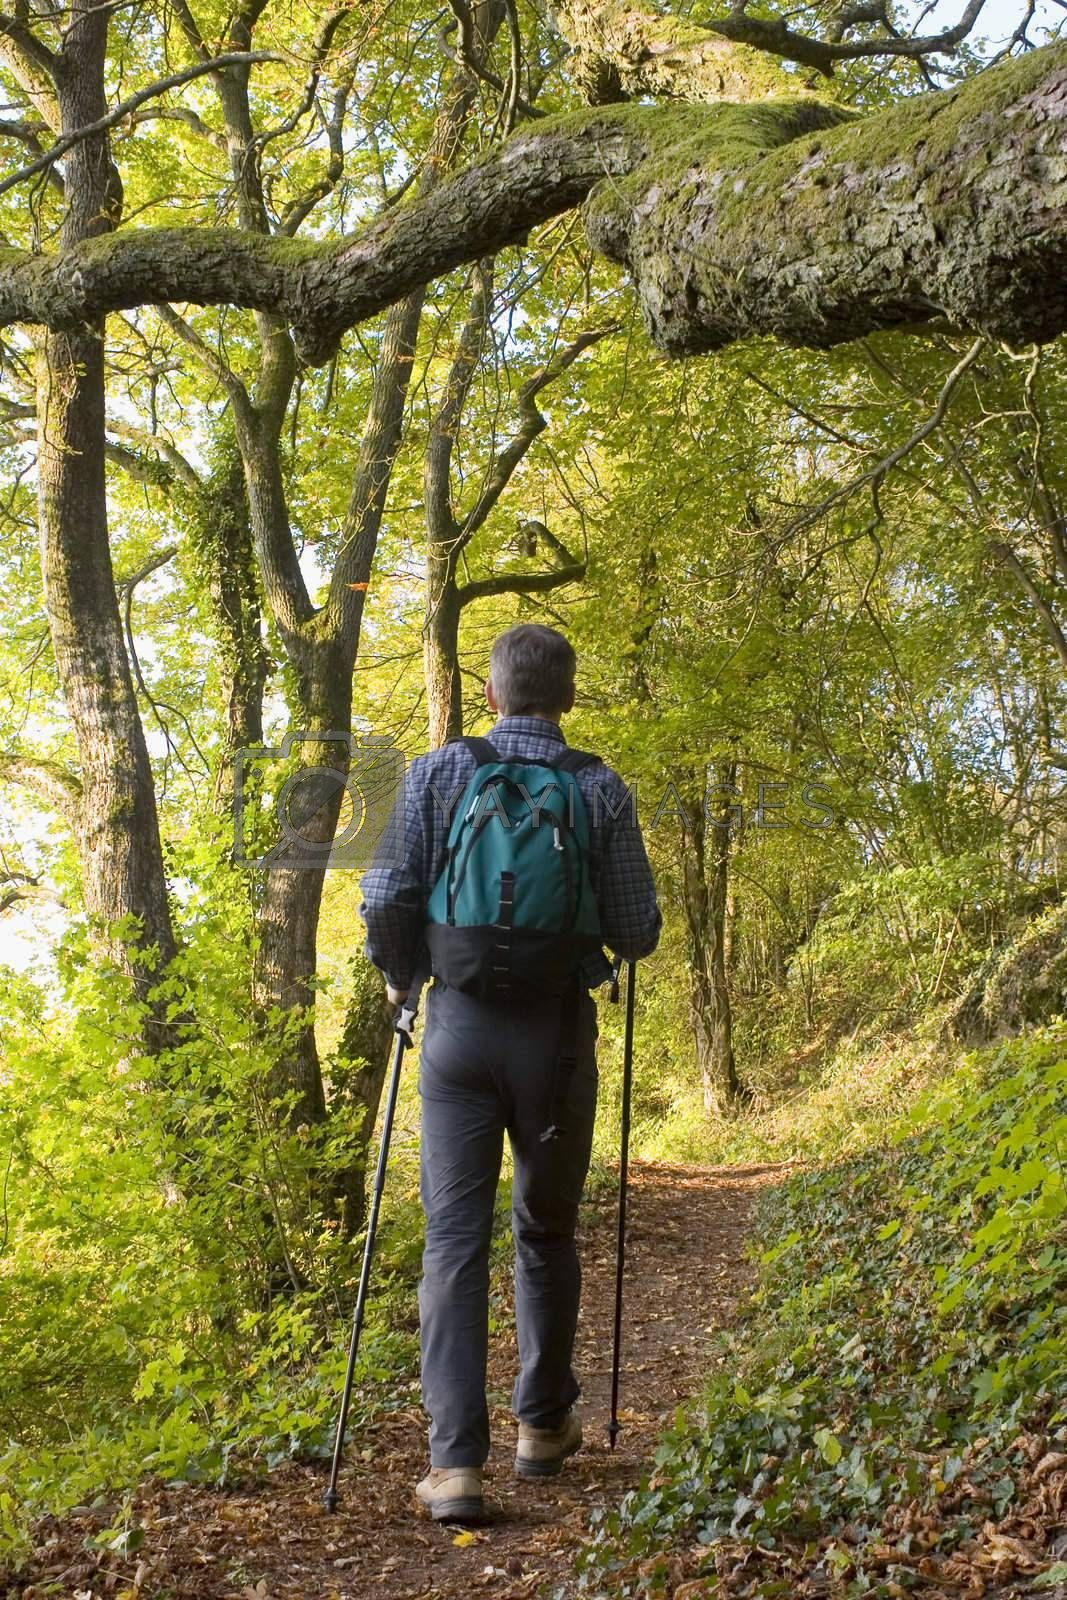 Hiker with rucksack in a green forest.